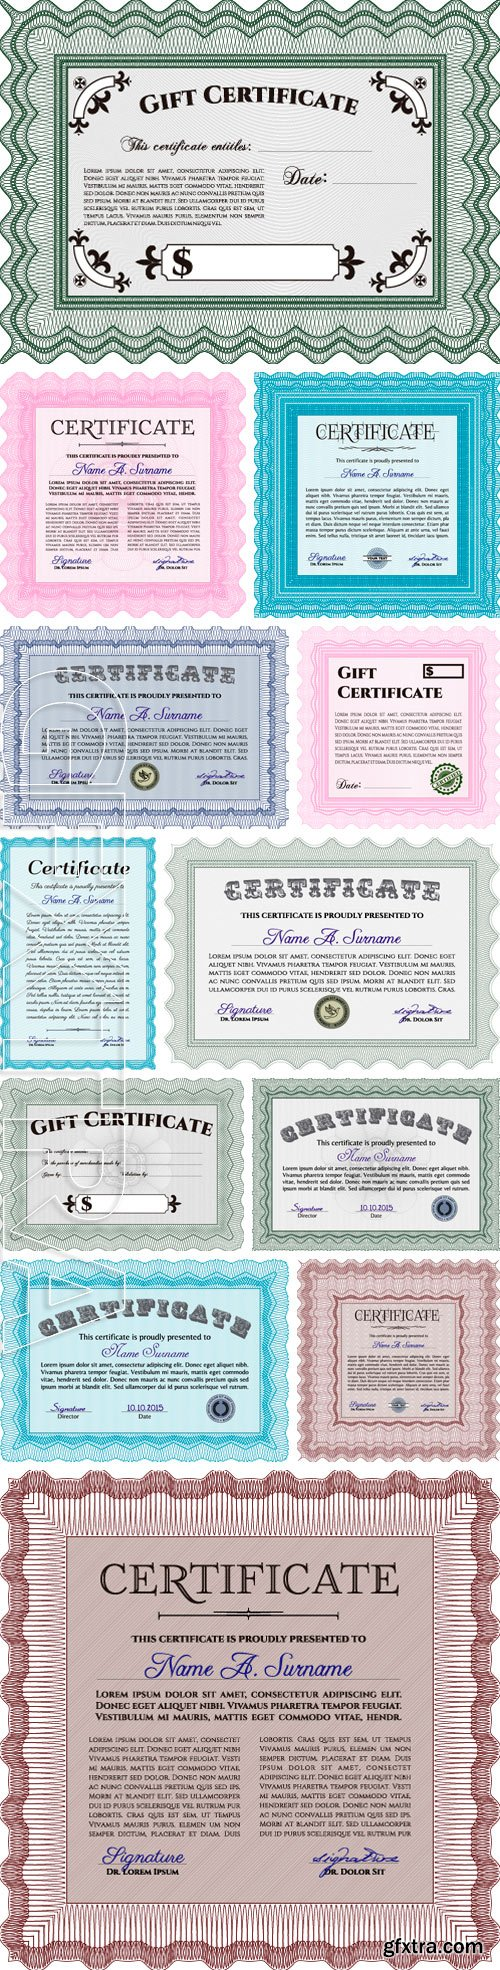 Stock Vectors - Certificate template. Border, frame.With quality background. Artistry design